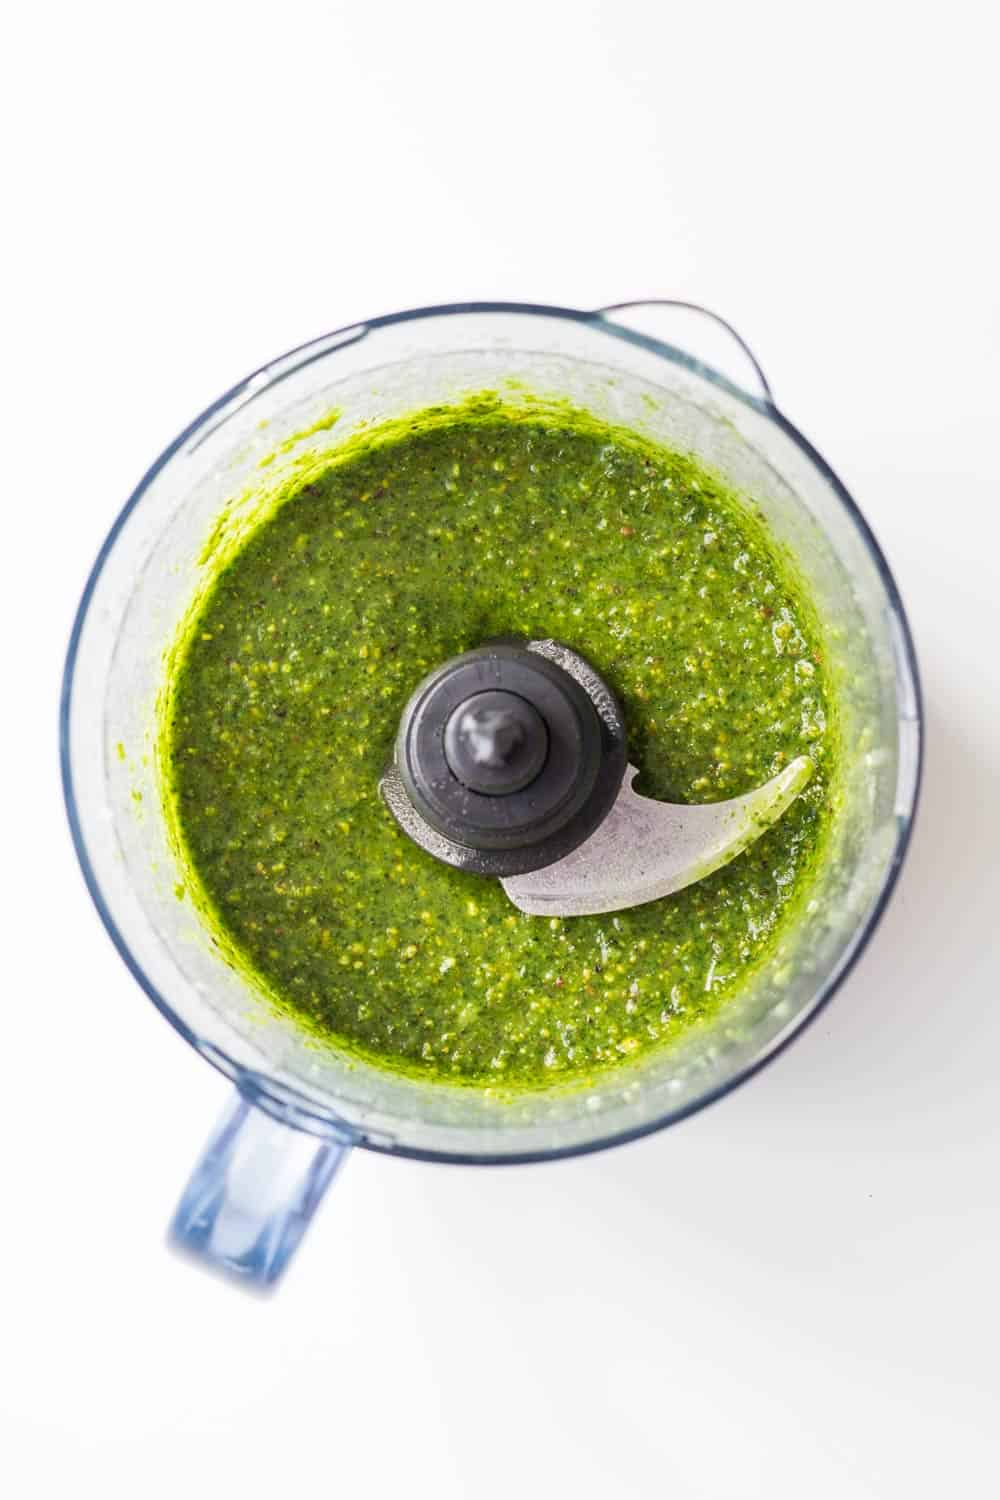 A 5-Minute Basil Pistachio Pesto a.k.a. magical green sauce that tastes as if little fairies had been at work in the kitchen and put some pixie dust in it!